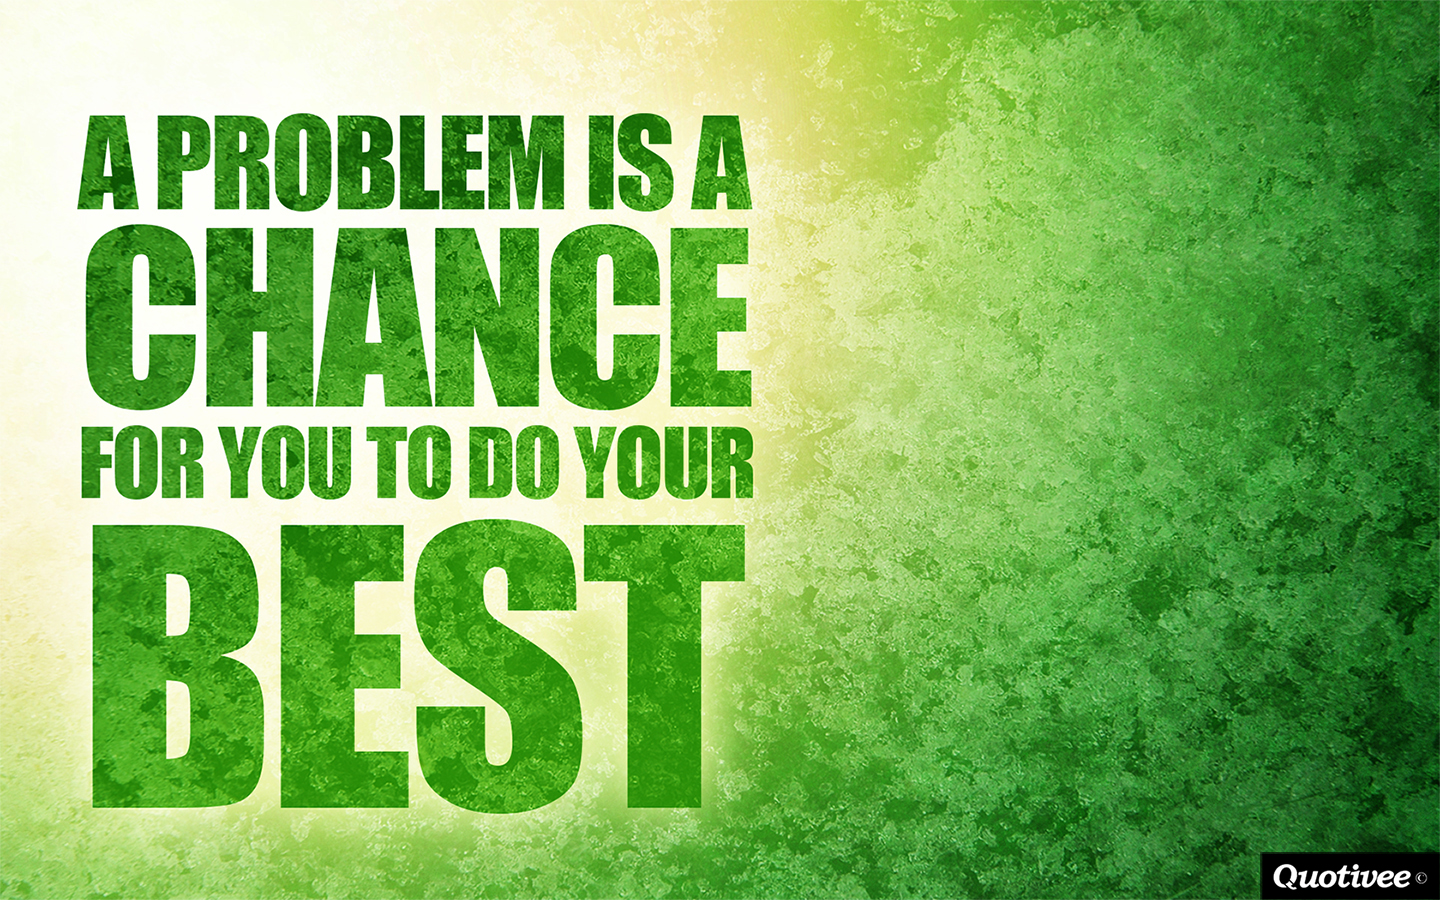 Do Your Best - Inspirational Quotes